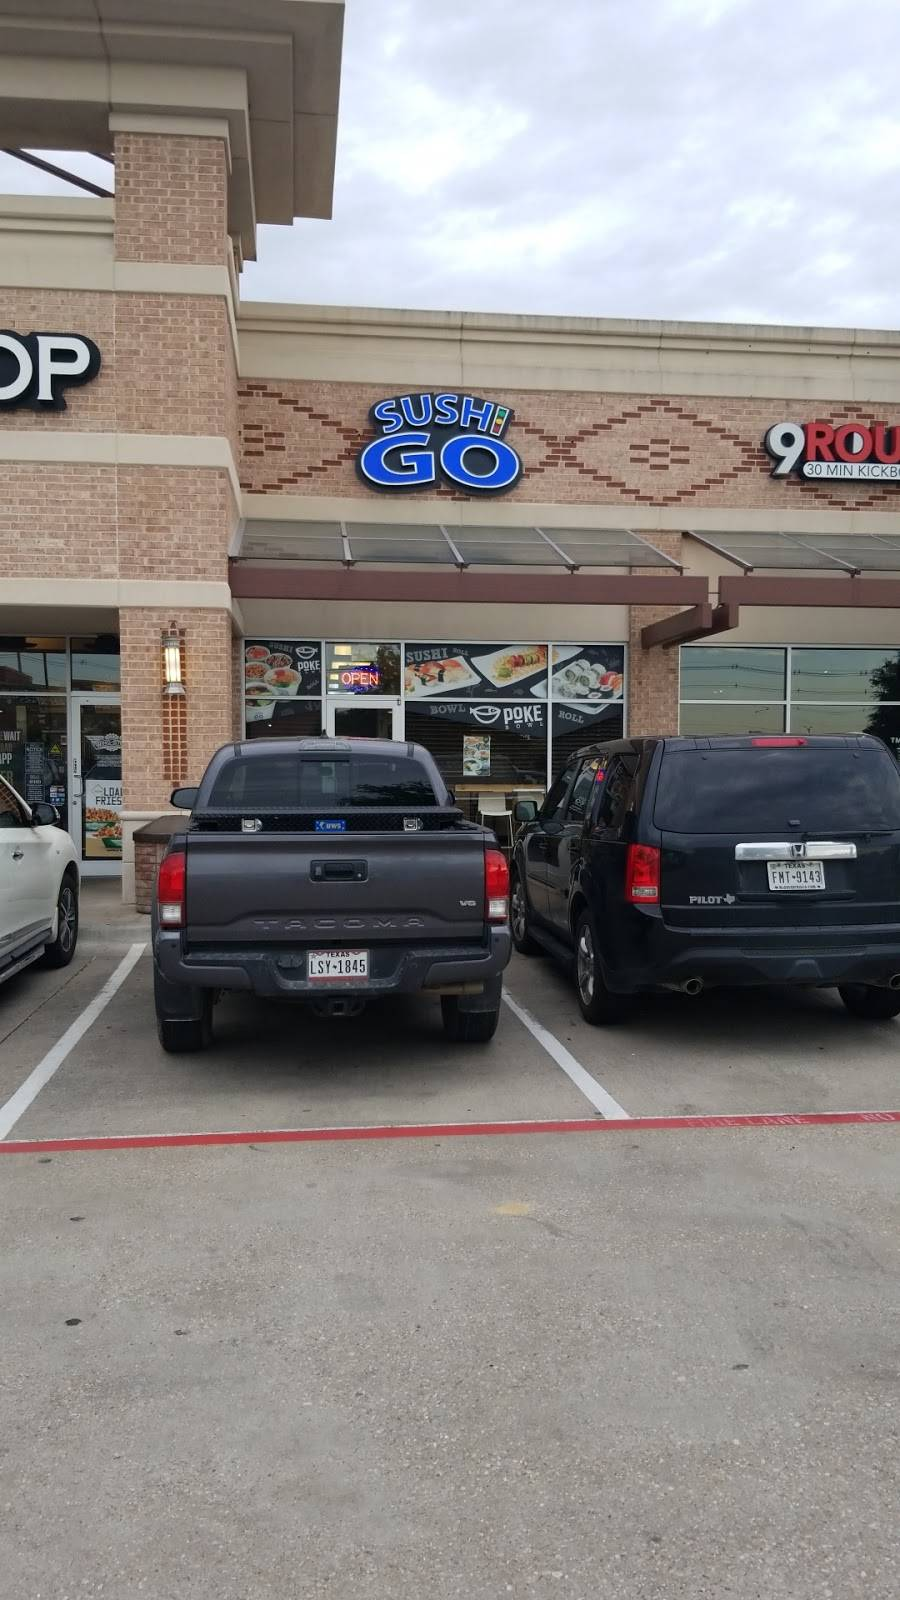 Sushi Go - meal delivery  | Photo 8 of 10 | Address: 8811 Teel Pkwy ste 130, Frisco, TX 75034, USA | Phone: (469) 294-0858